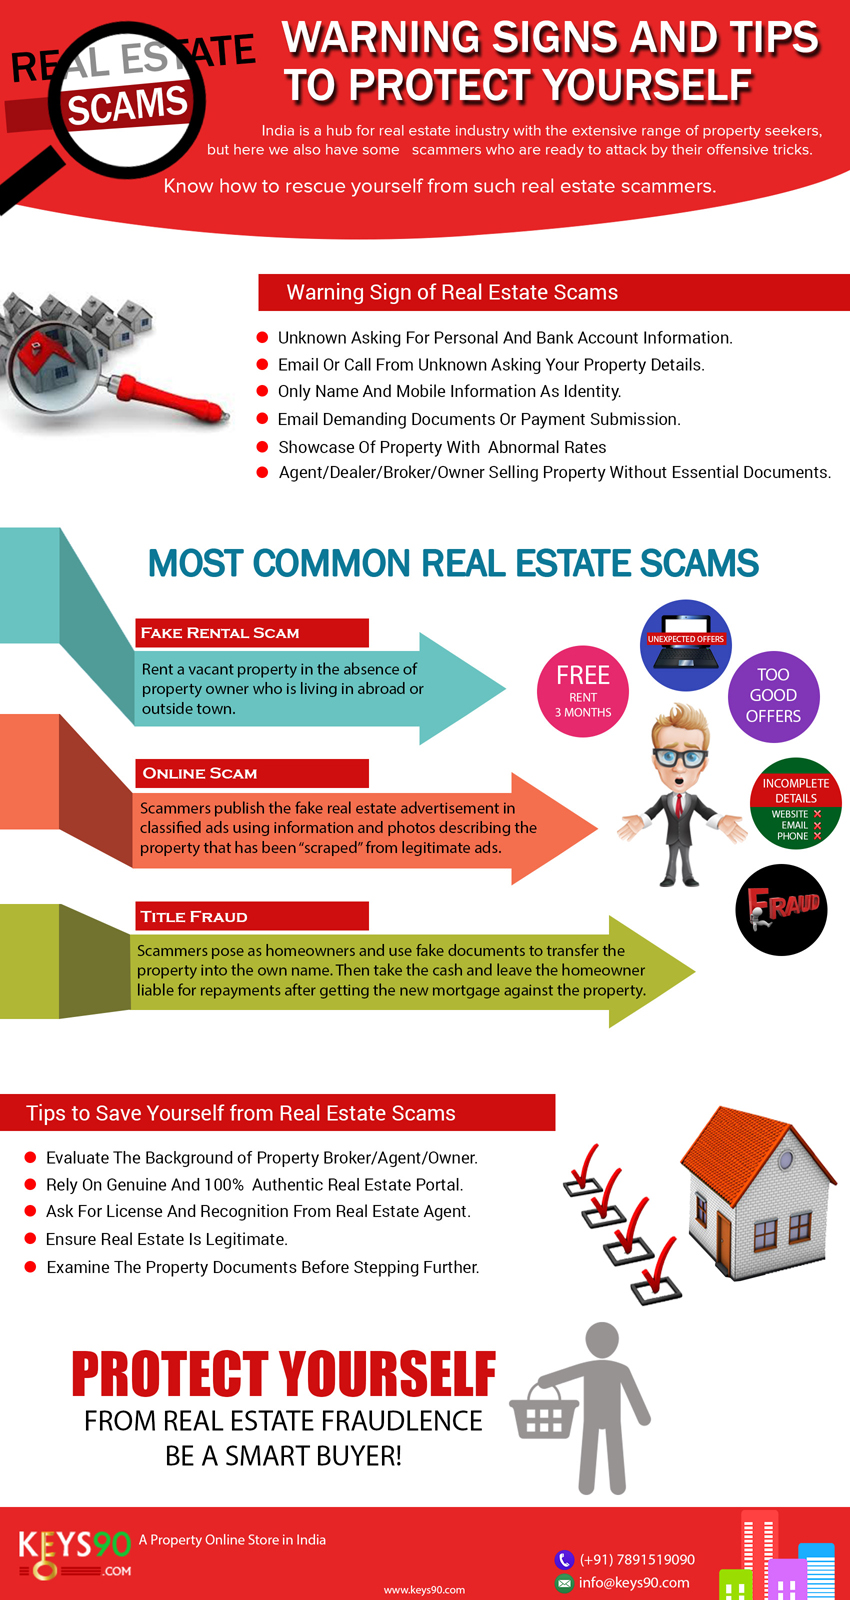 Real Estate Scams – Warning Signs and Tips